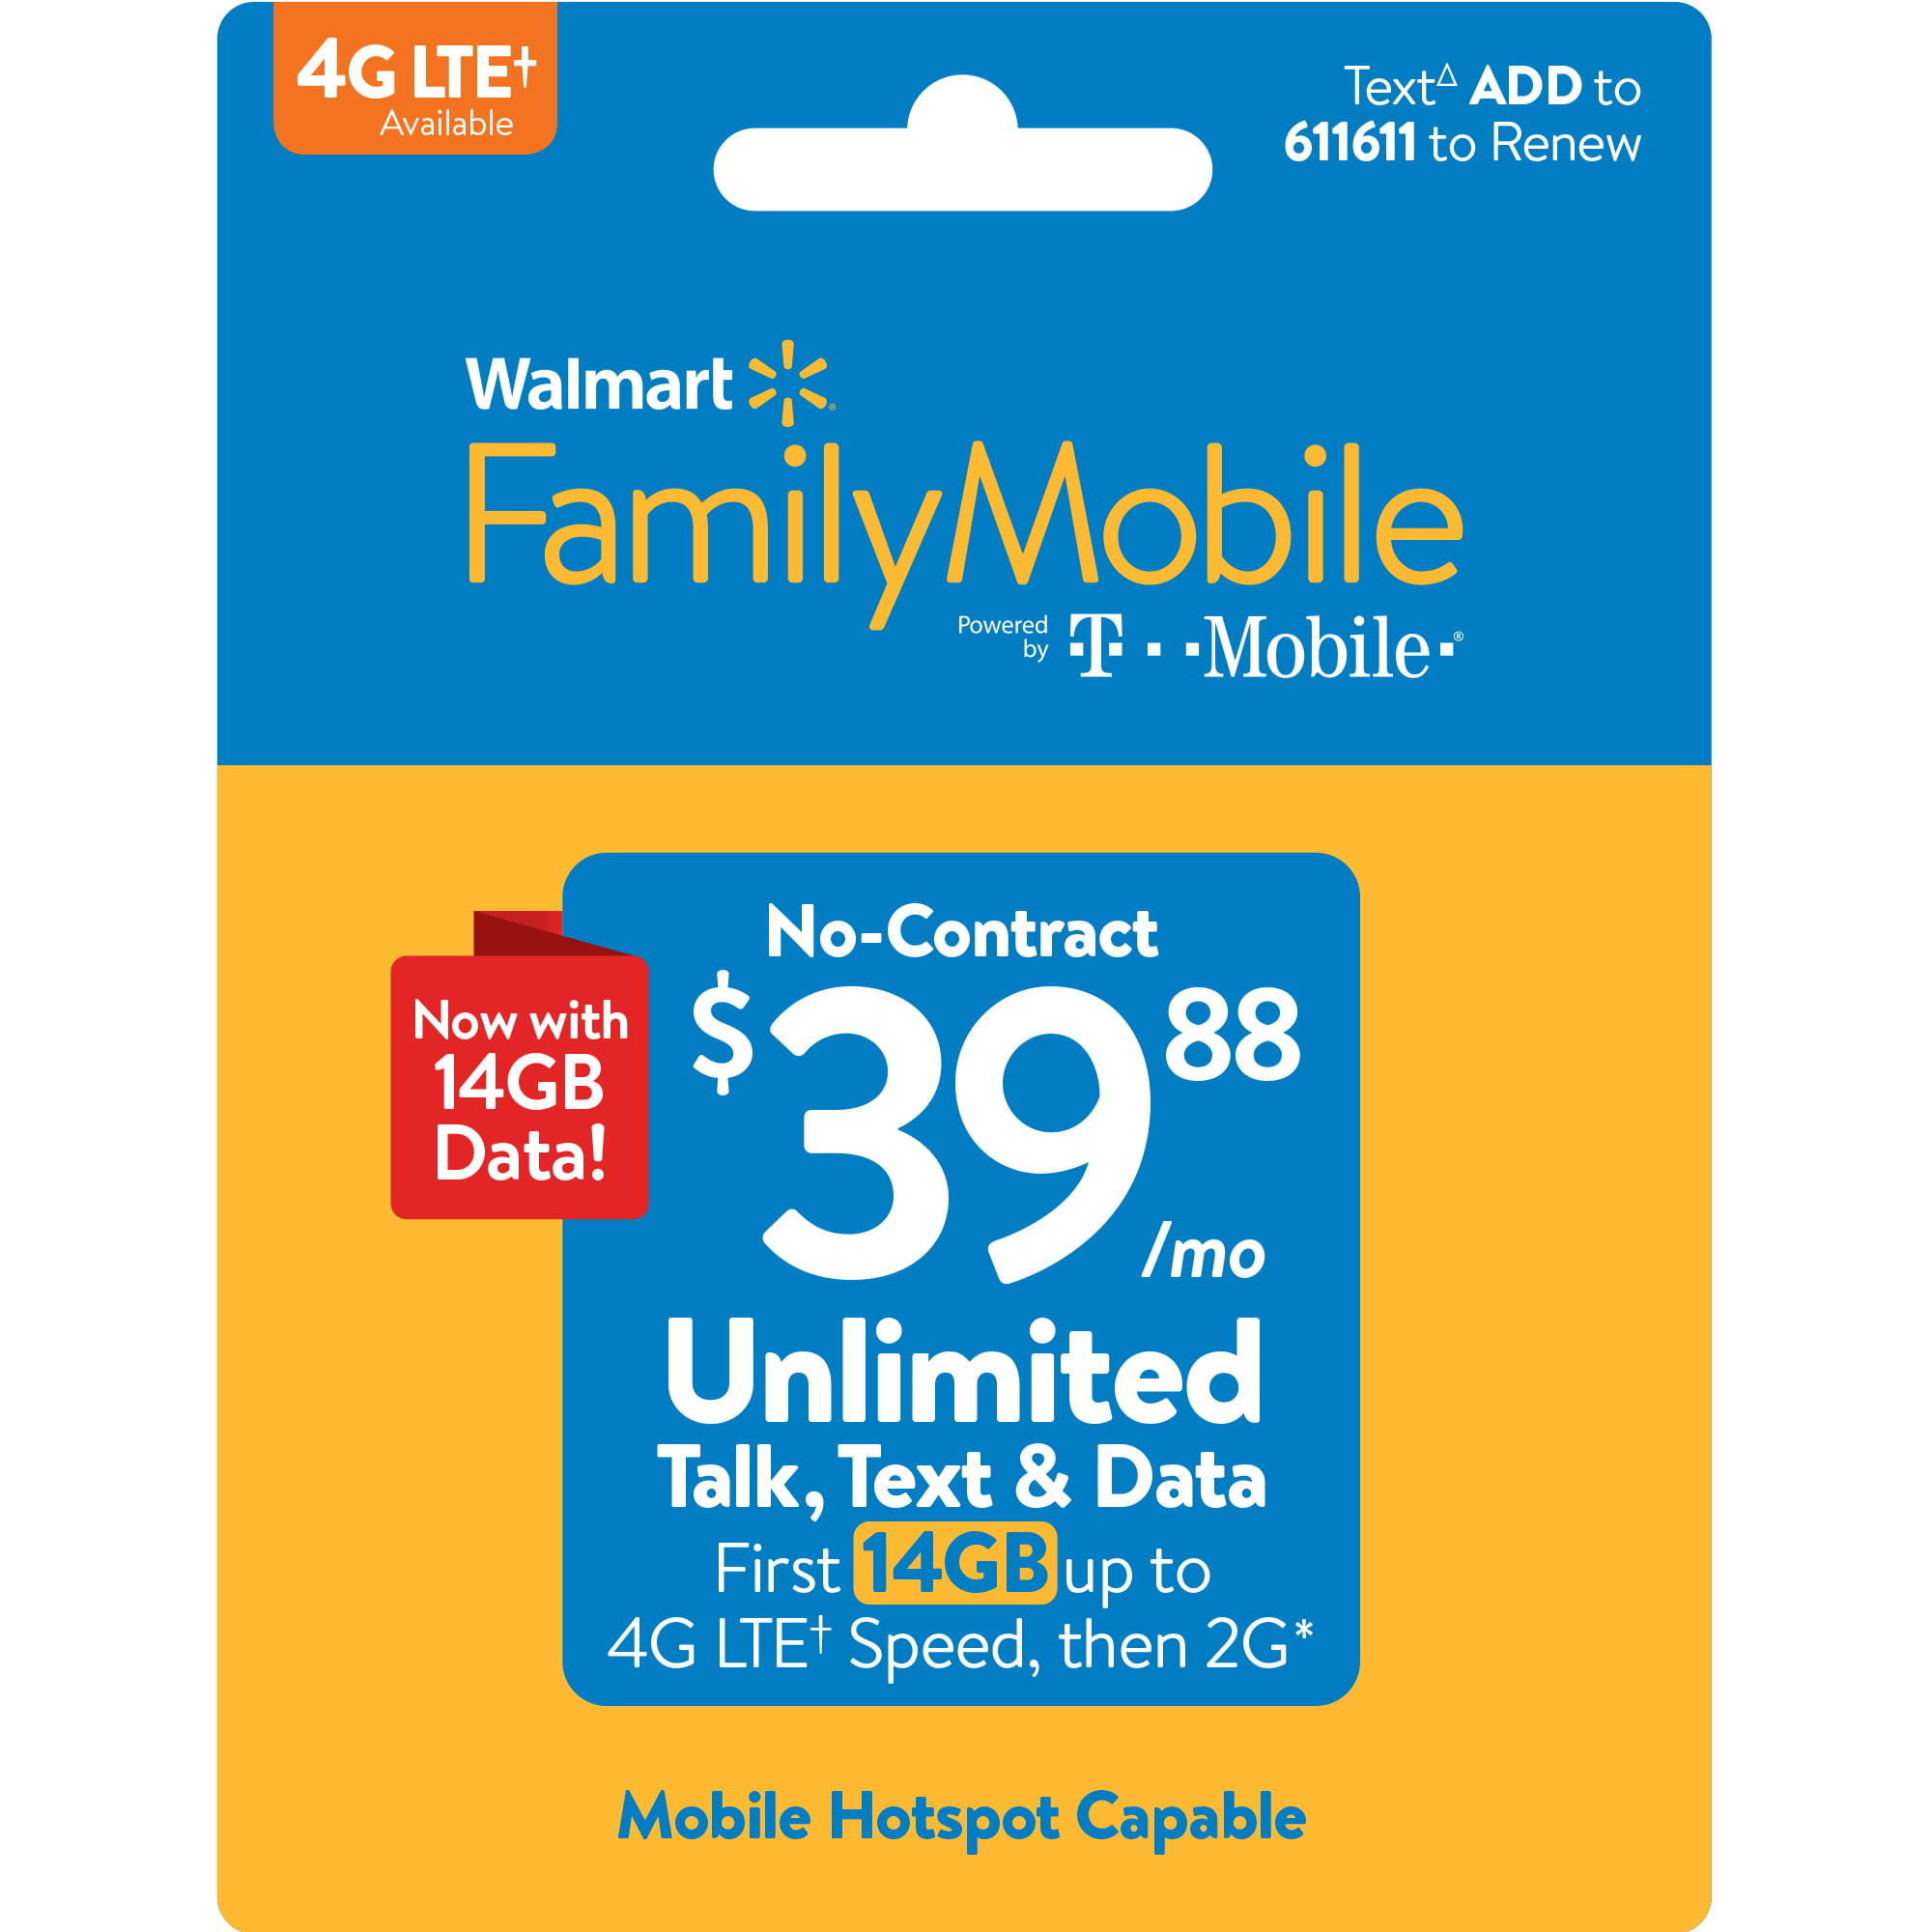 Walmart cell plans reviews